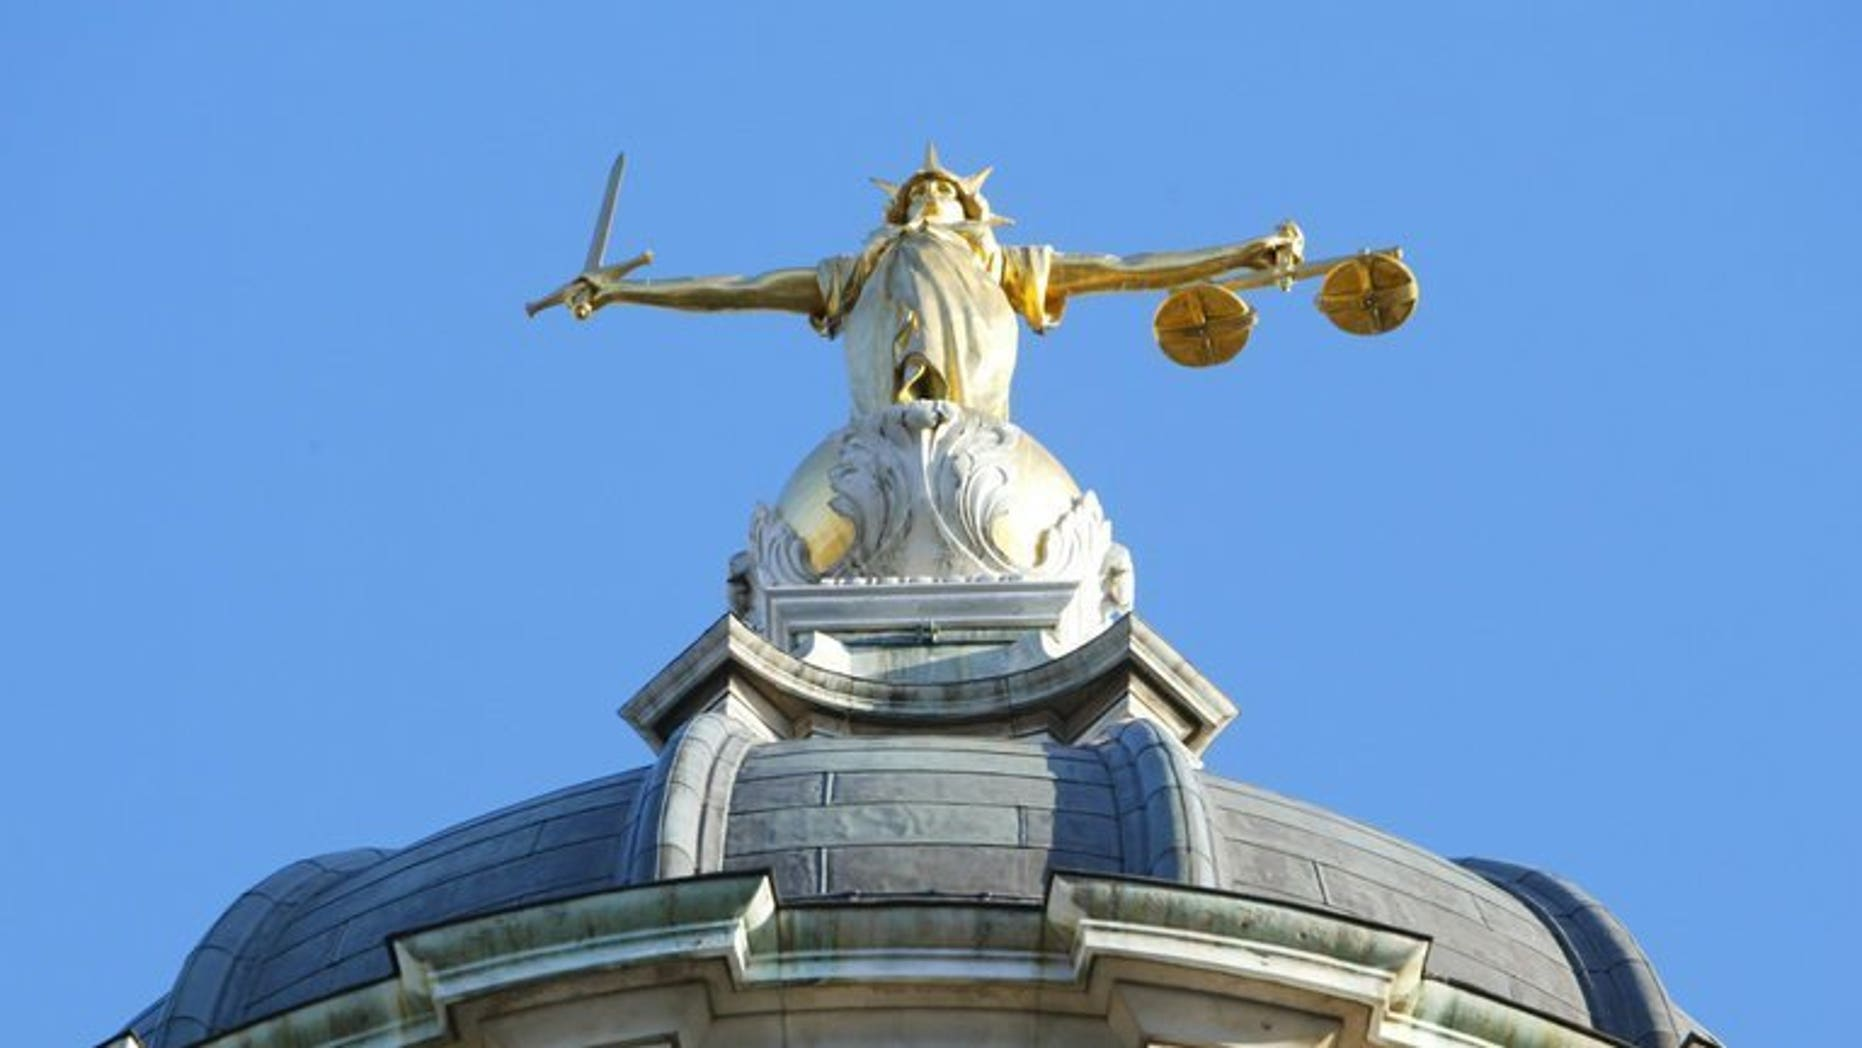 """The statue of justice, on the roof of the Old Bailey, pictured on December 17, 2003 in London. A Ukrainian man charged over three mosque bombings in the West Midlands and the """"terrorist-related"""" murder of an elderly Muslim man is due to appear in court later."""